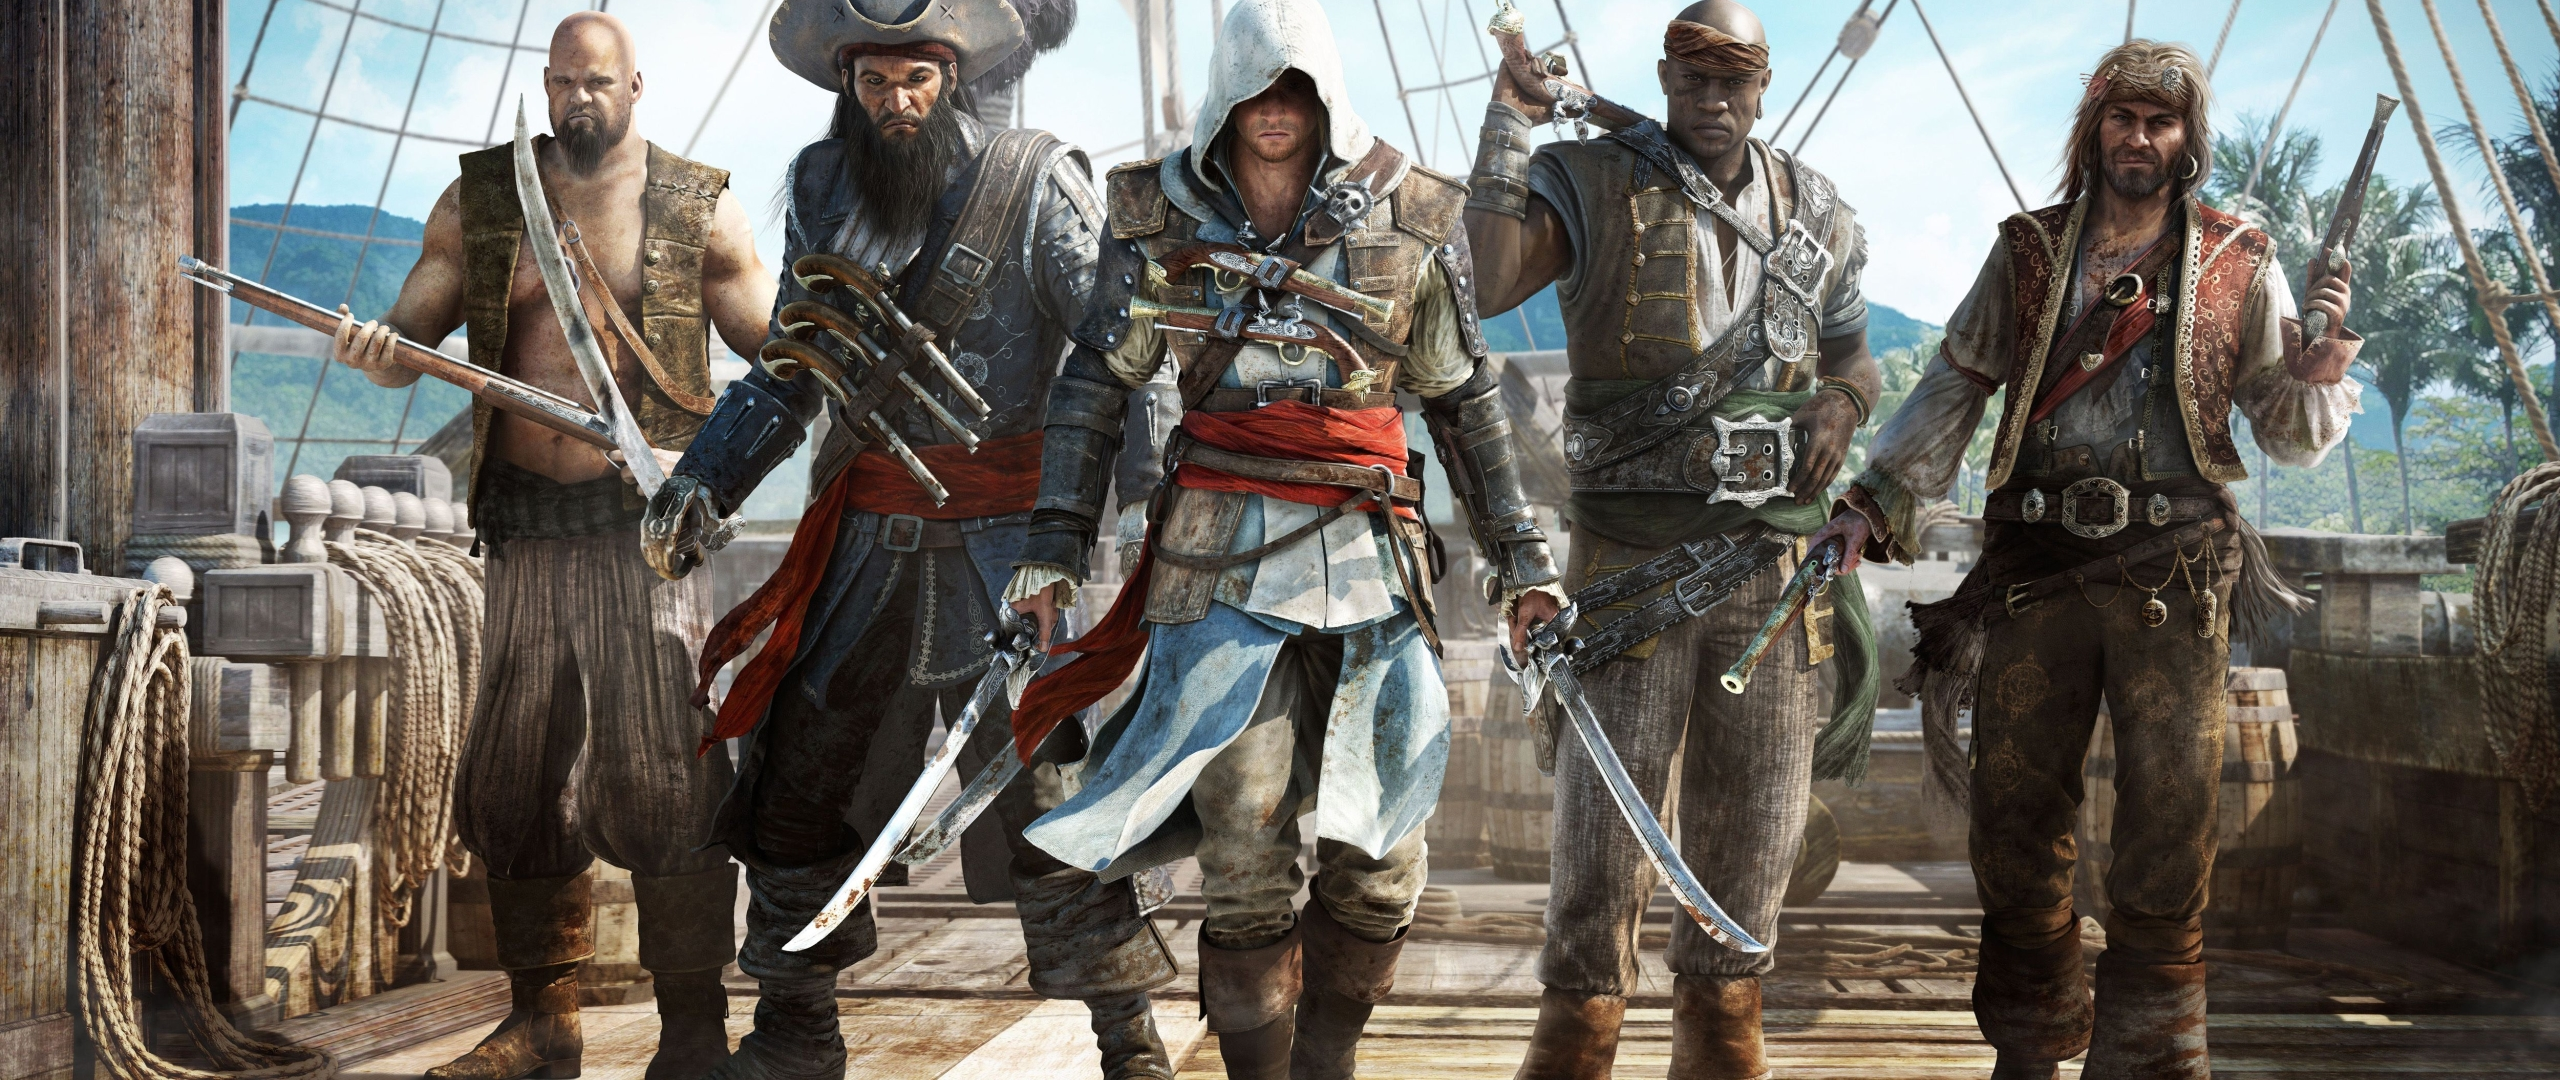 2560x1080 Assassins Creed Black Flag Pirates 2560x1080